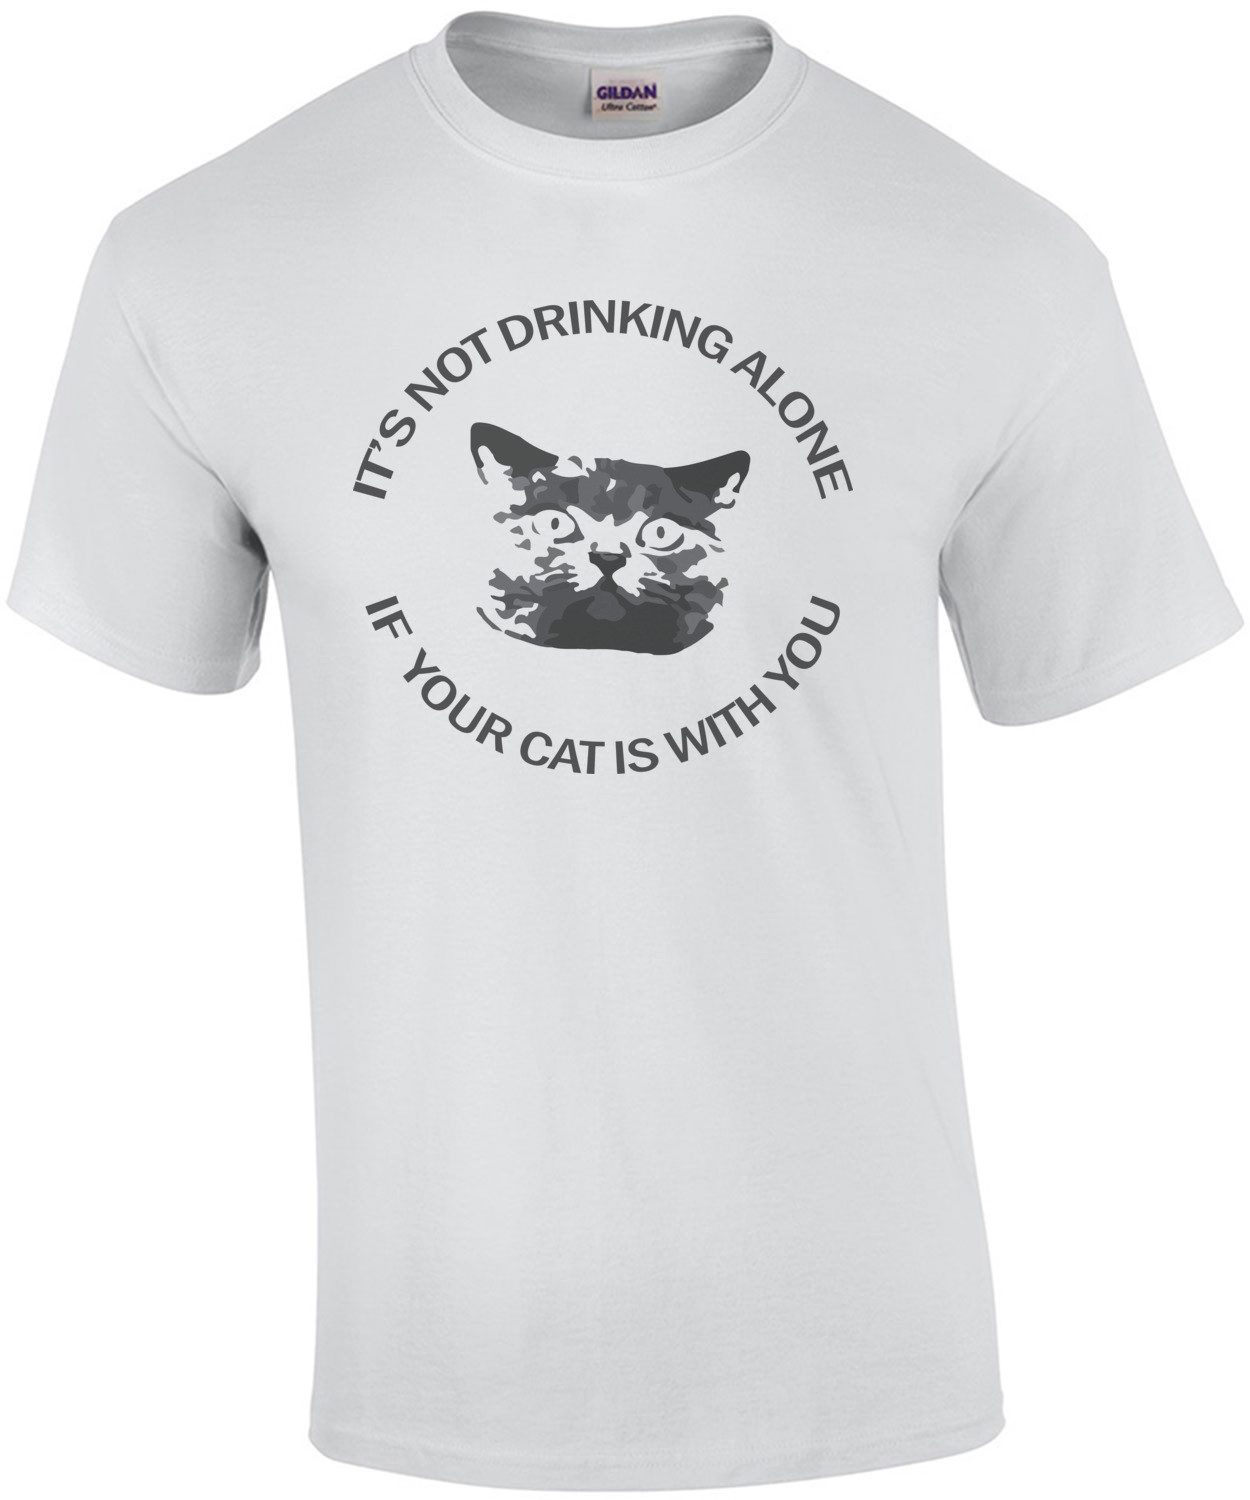 It's not drinking alone if your cat is with you. T-Shirt